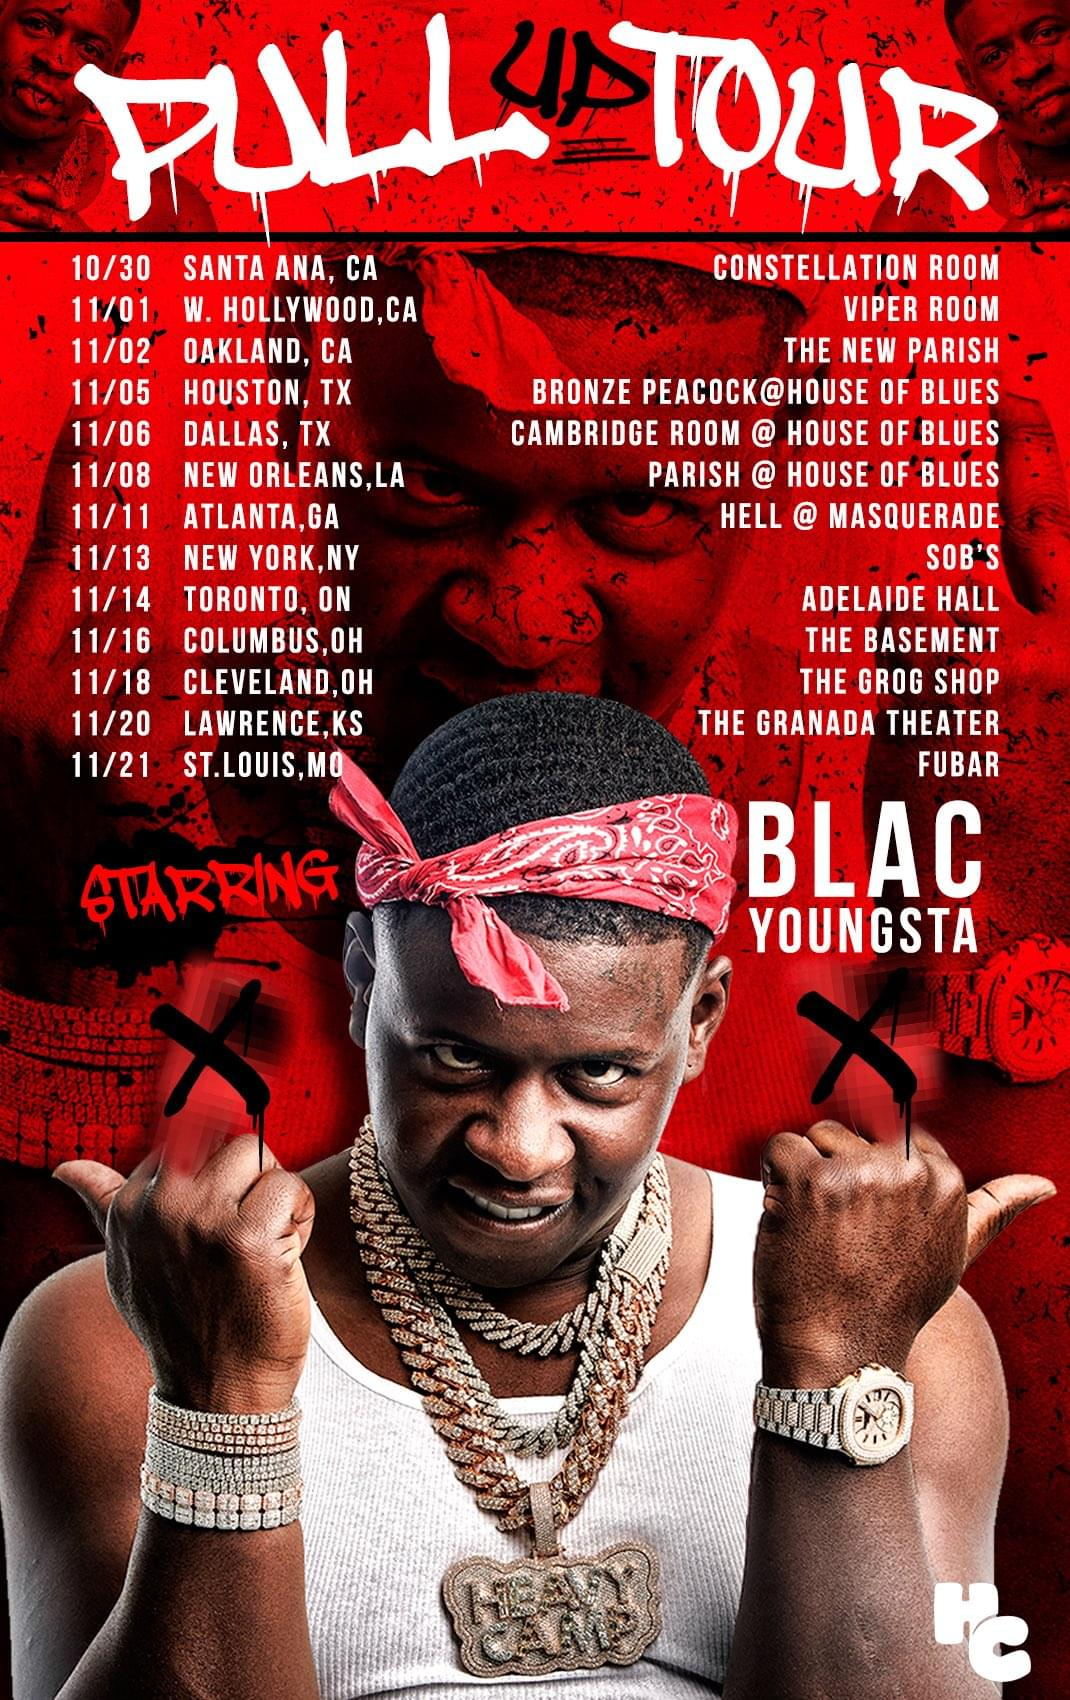 Blac Youngsta: Pull Up Tour